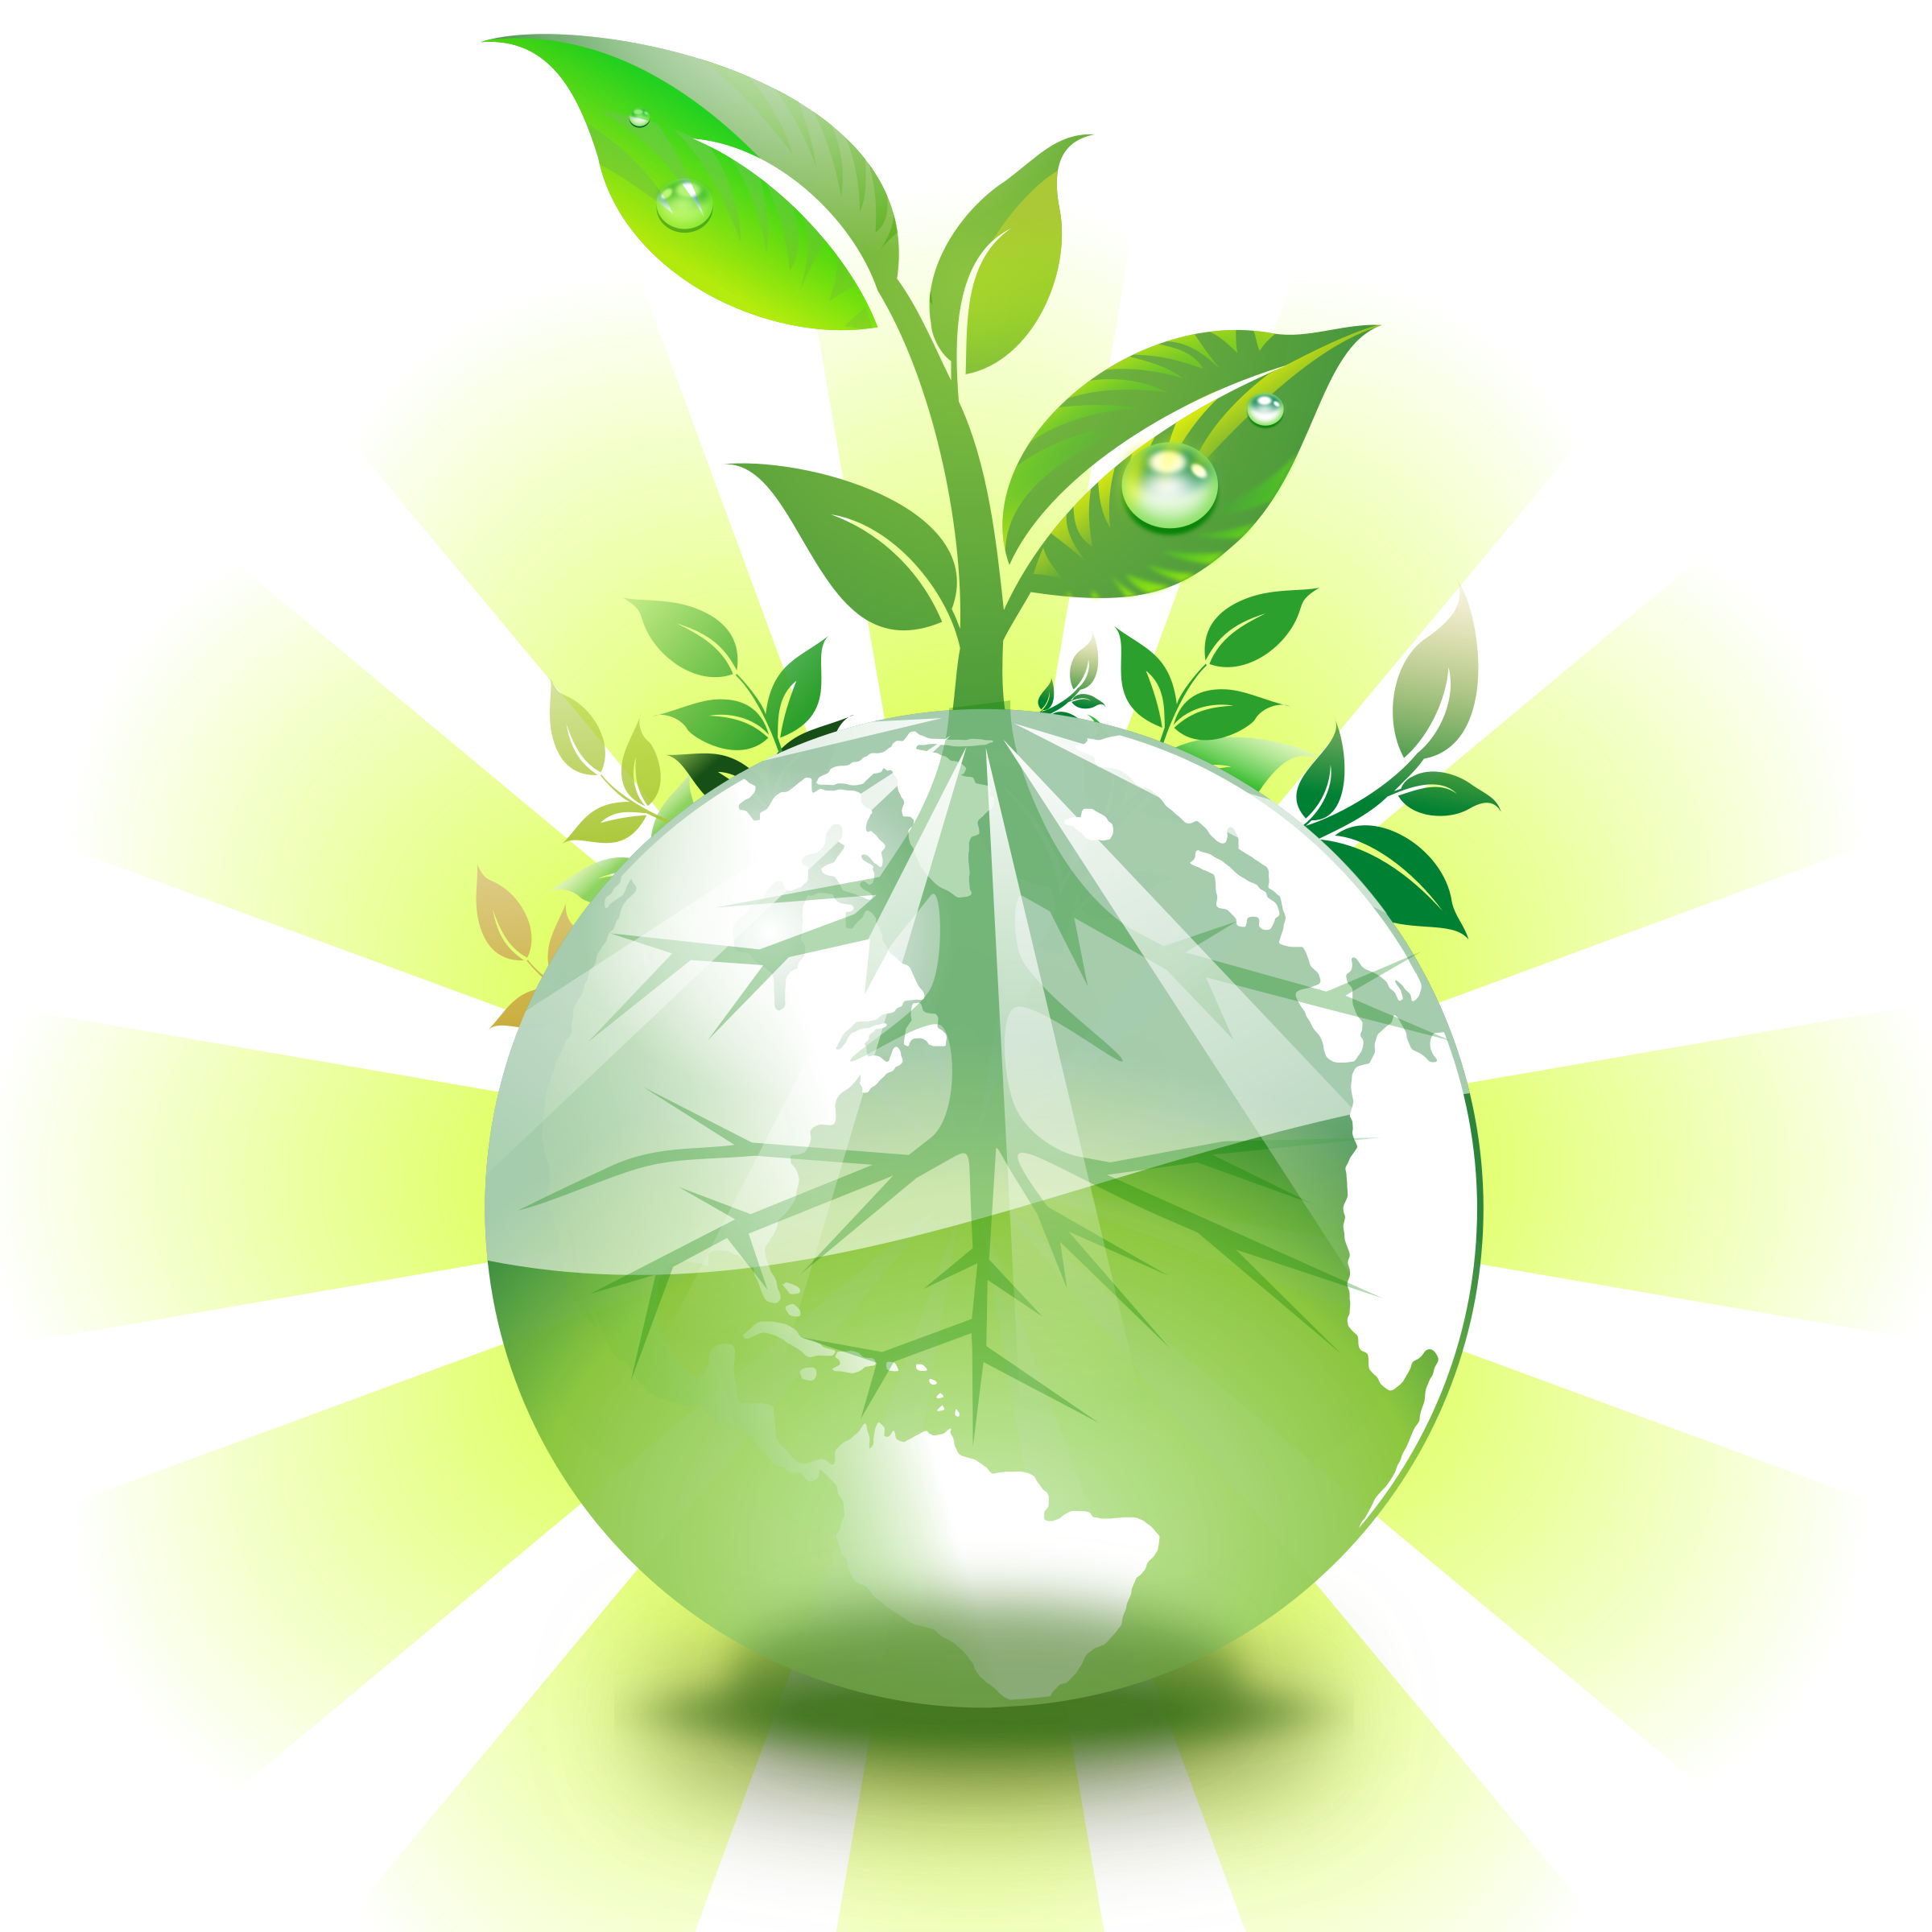 Green earth by mrallowski. Environment clipart sustainable living